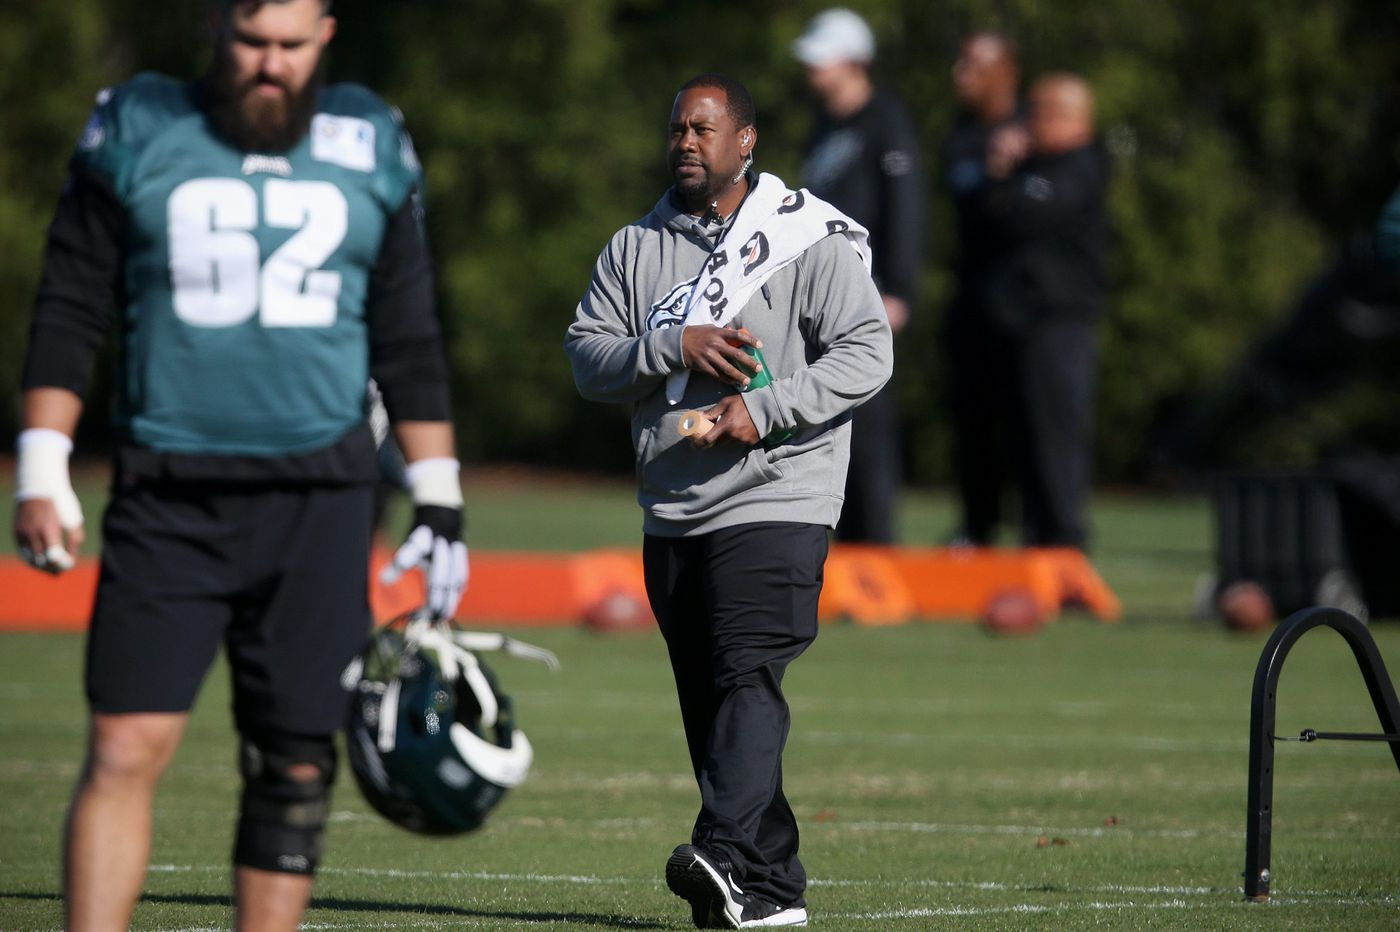 Handling of Darren Sproles' injury raises more questions about Eagles' new medical staff | Jeff McLane